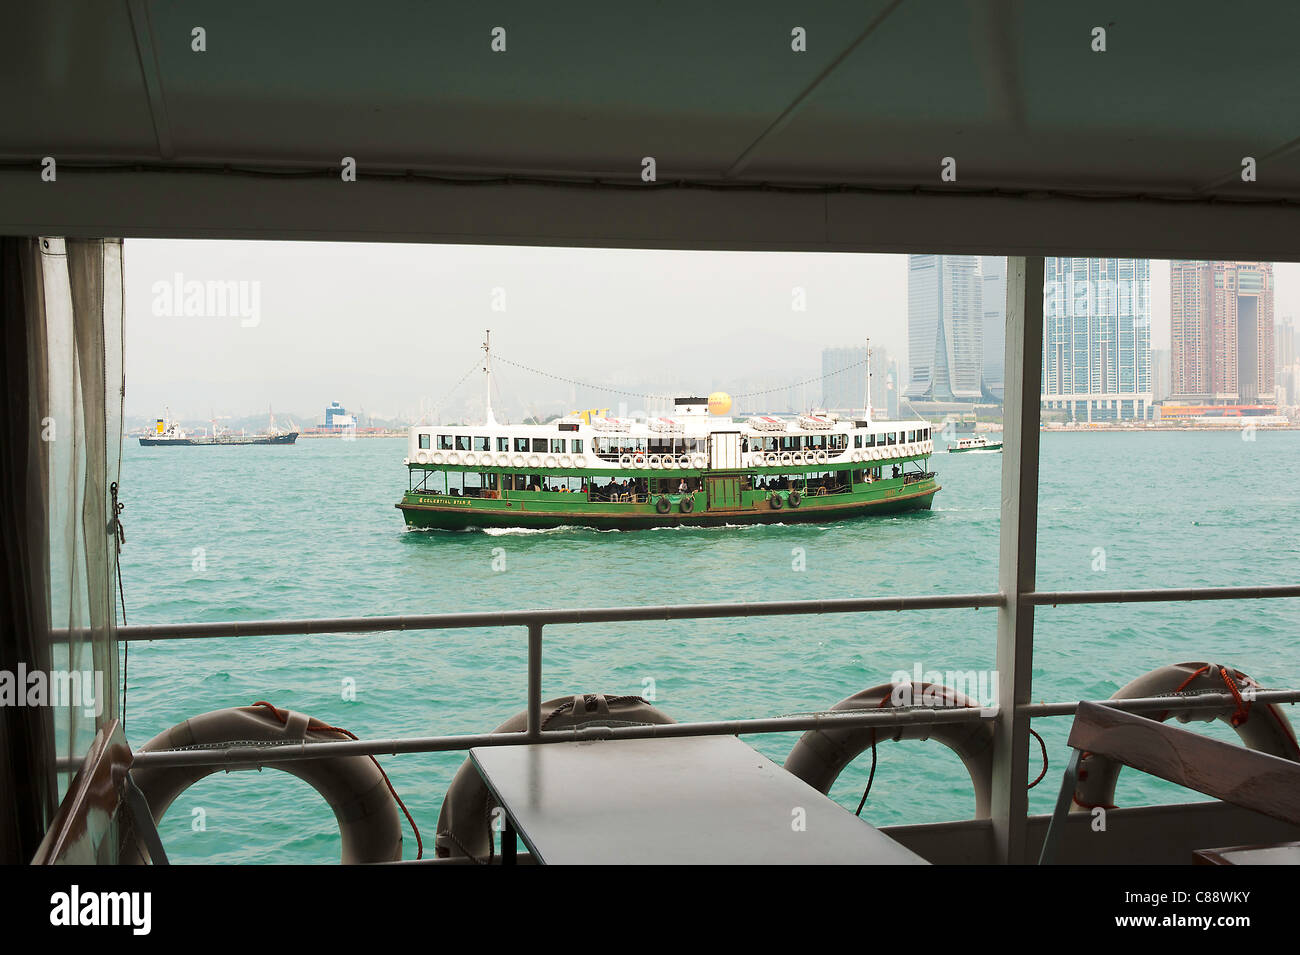 The Green and White Star Ferry Line Boat Service Celestial Star Sailing in Victoria Harbour to Kowloon Hong Kong - Stock Image